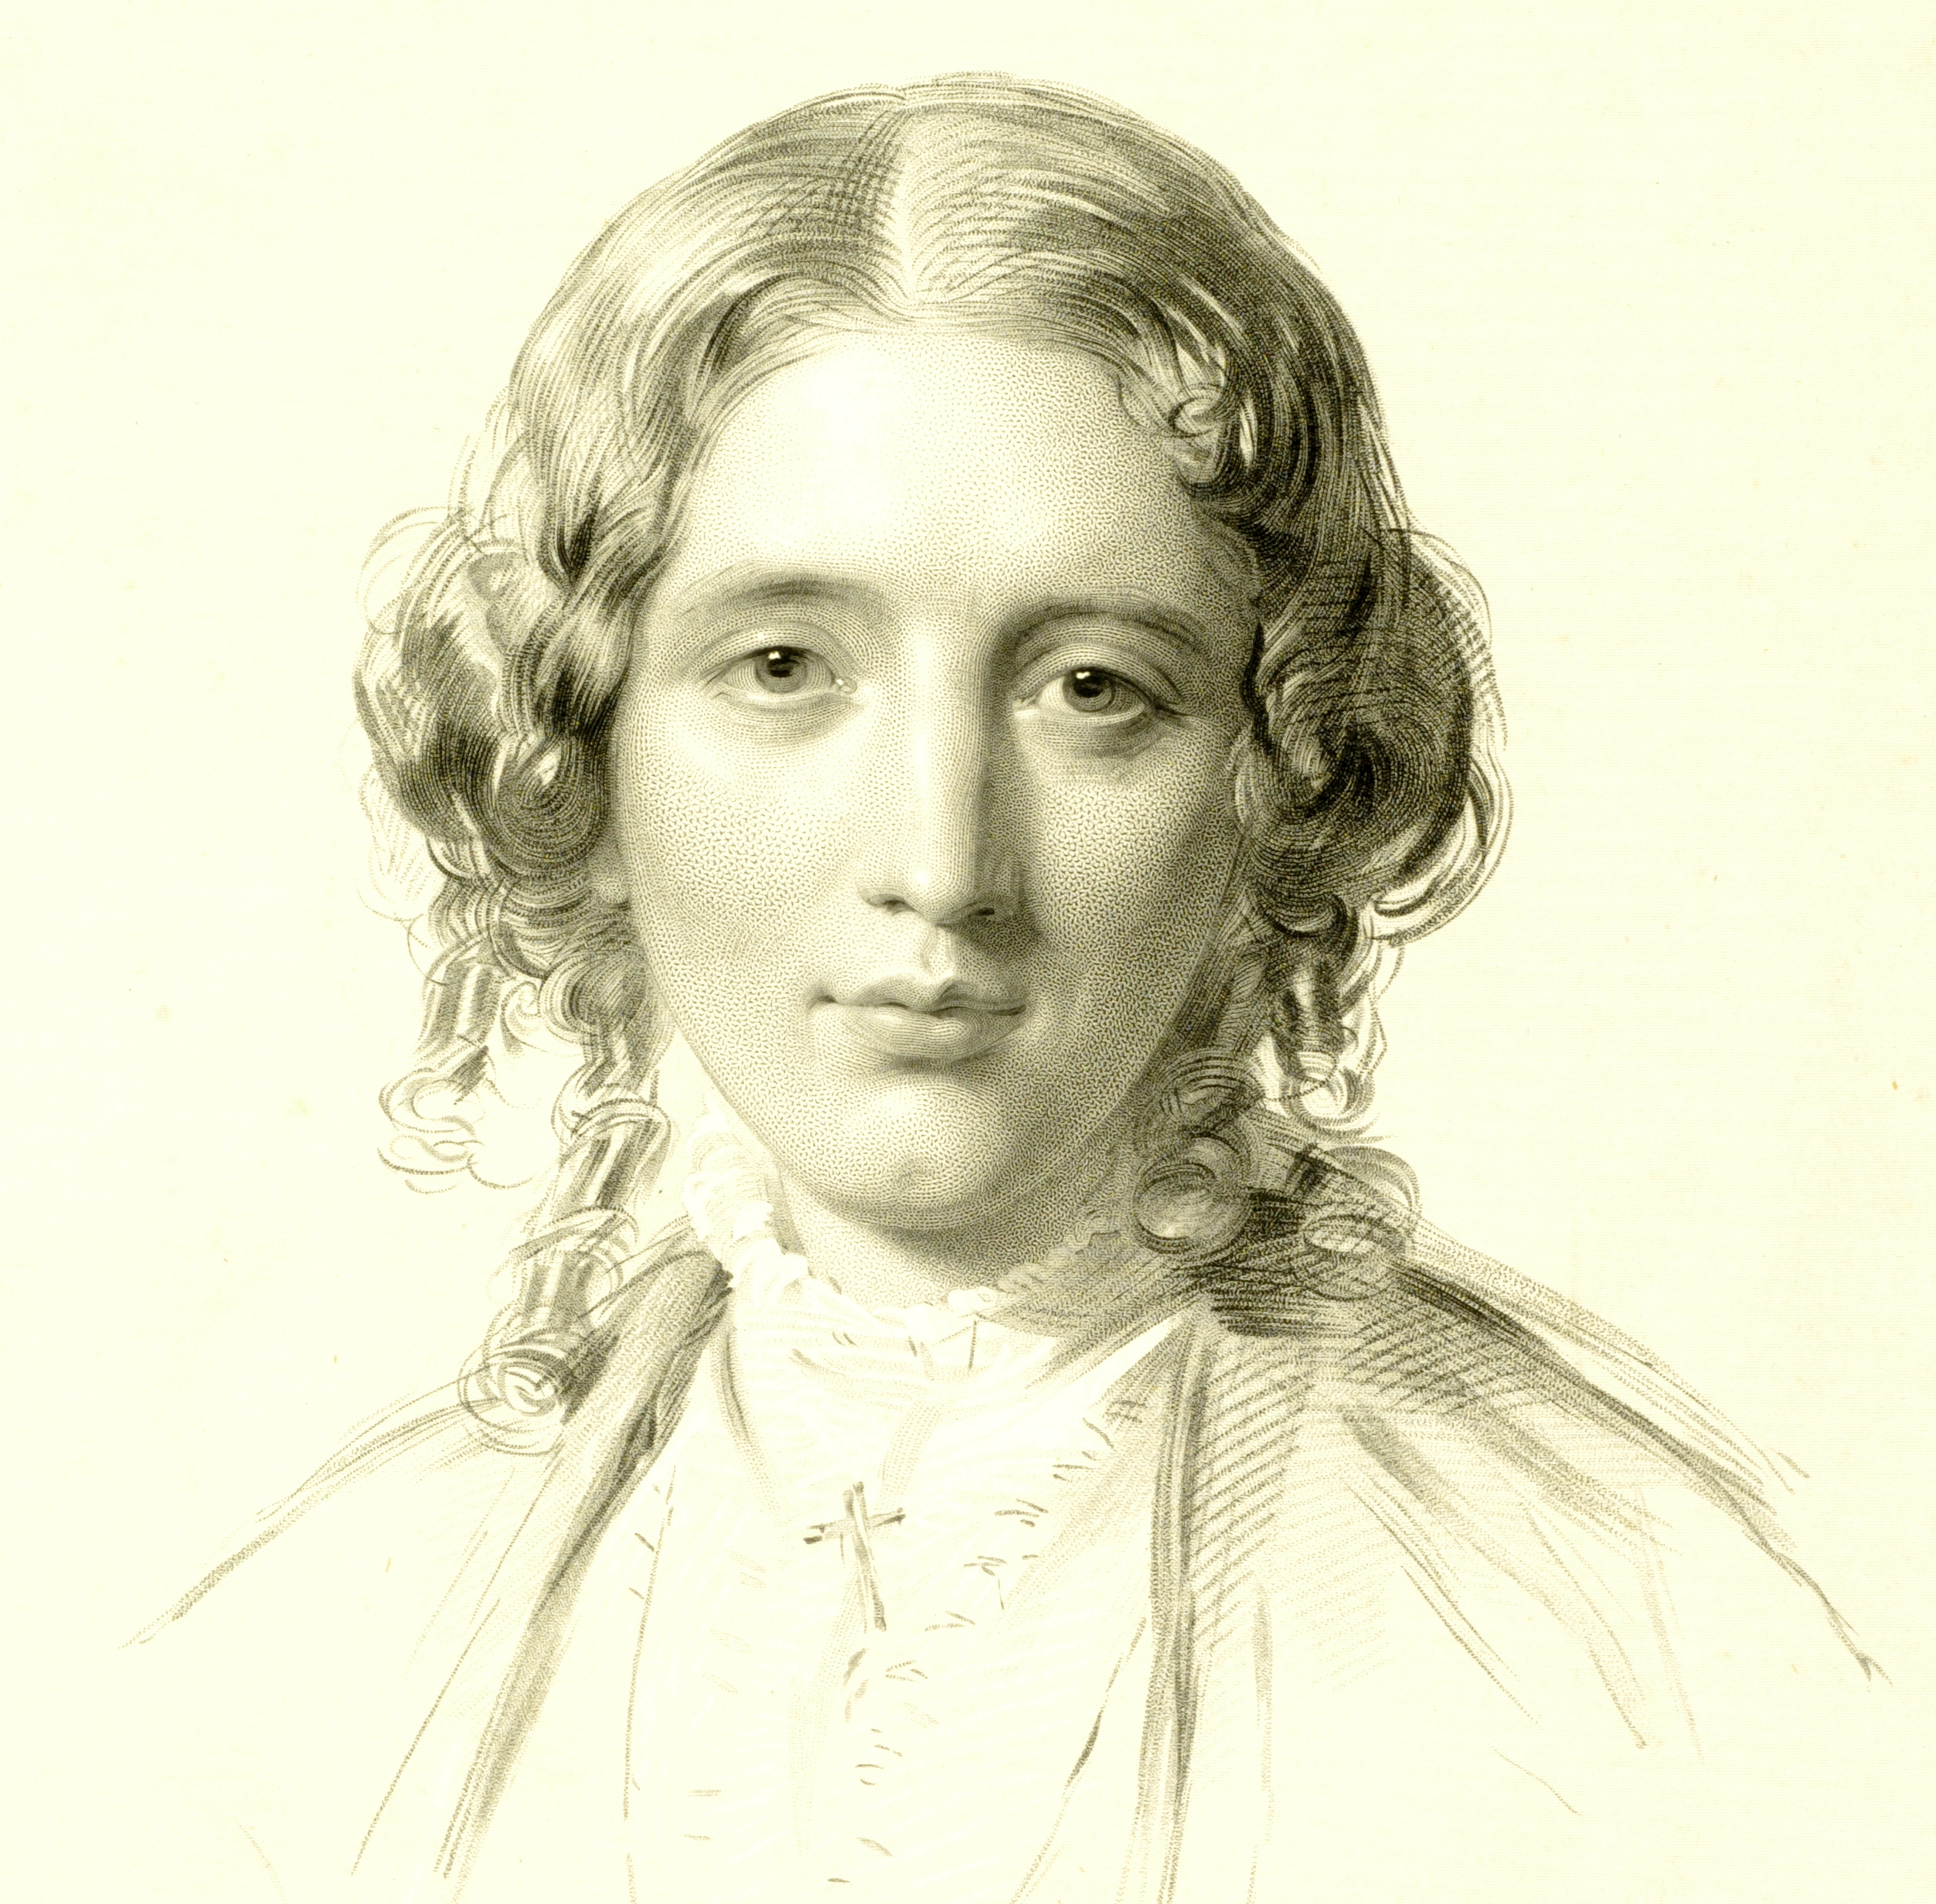 Harriet Beecher Stowe, posed here for an author's portrait, wrote a book read 'round the world.